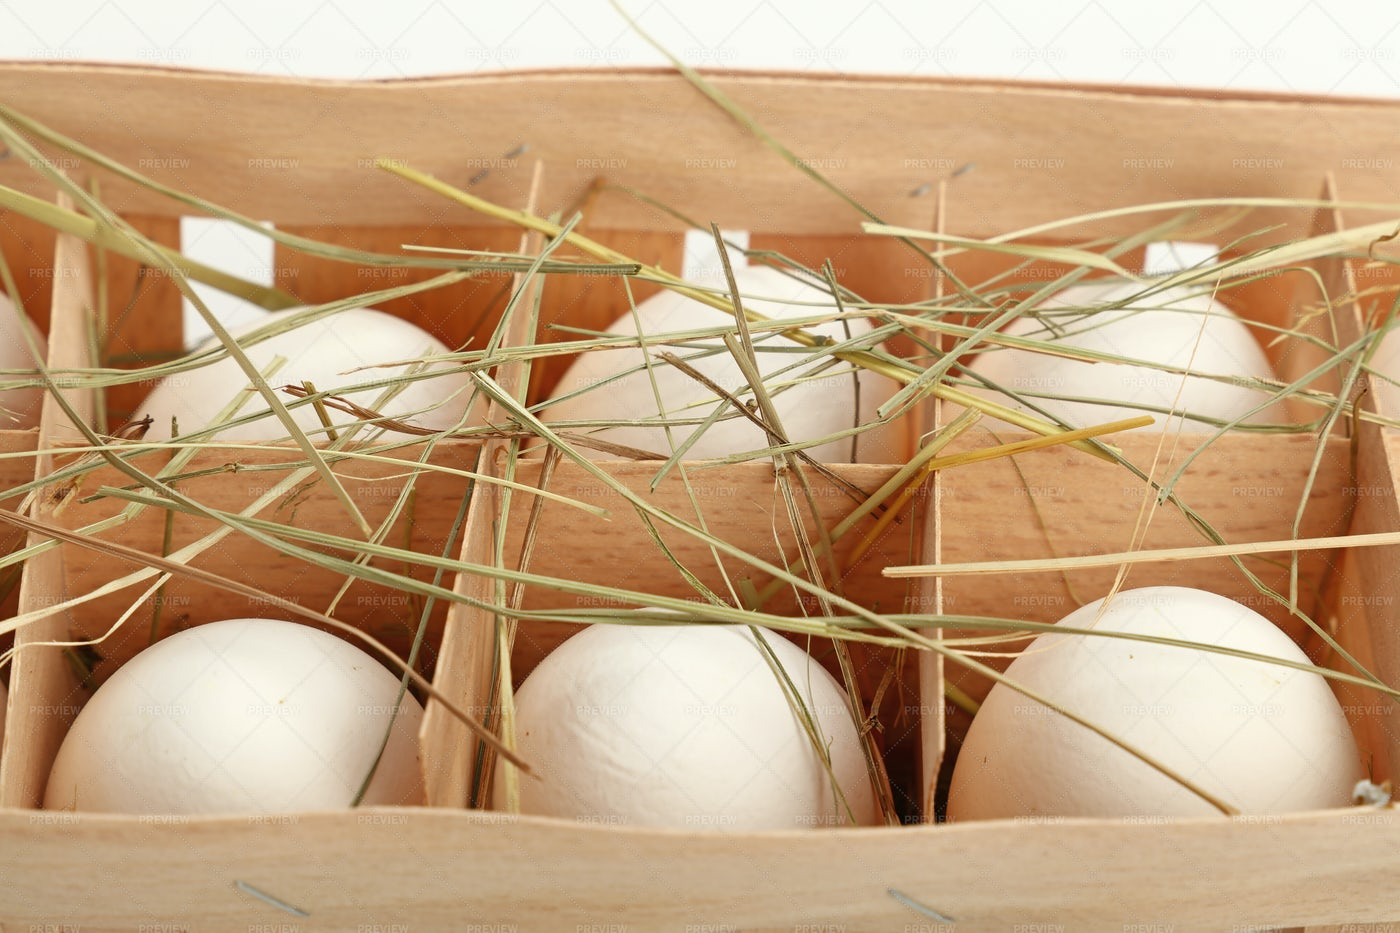 Eggs In Containers: Stock Photos